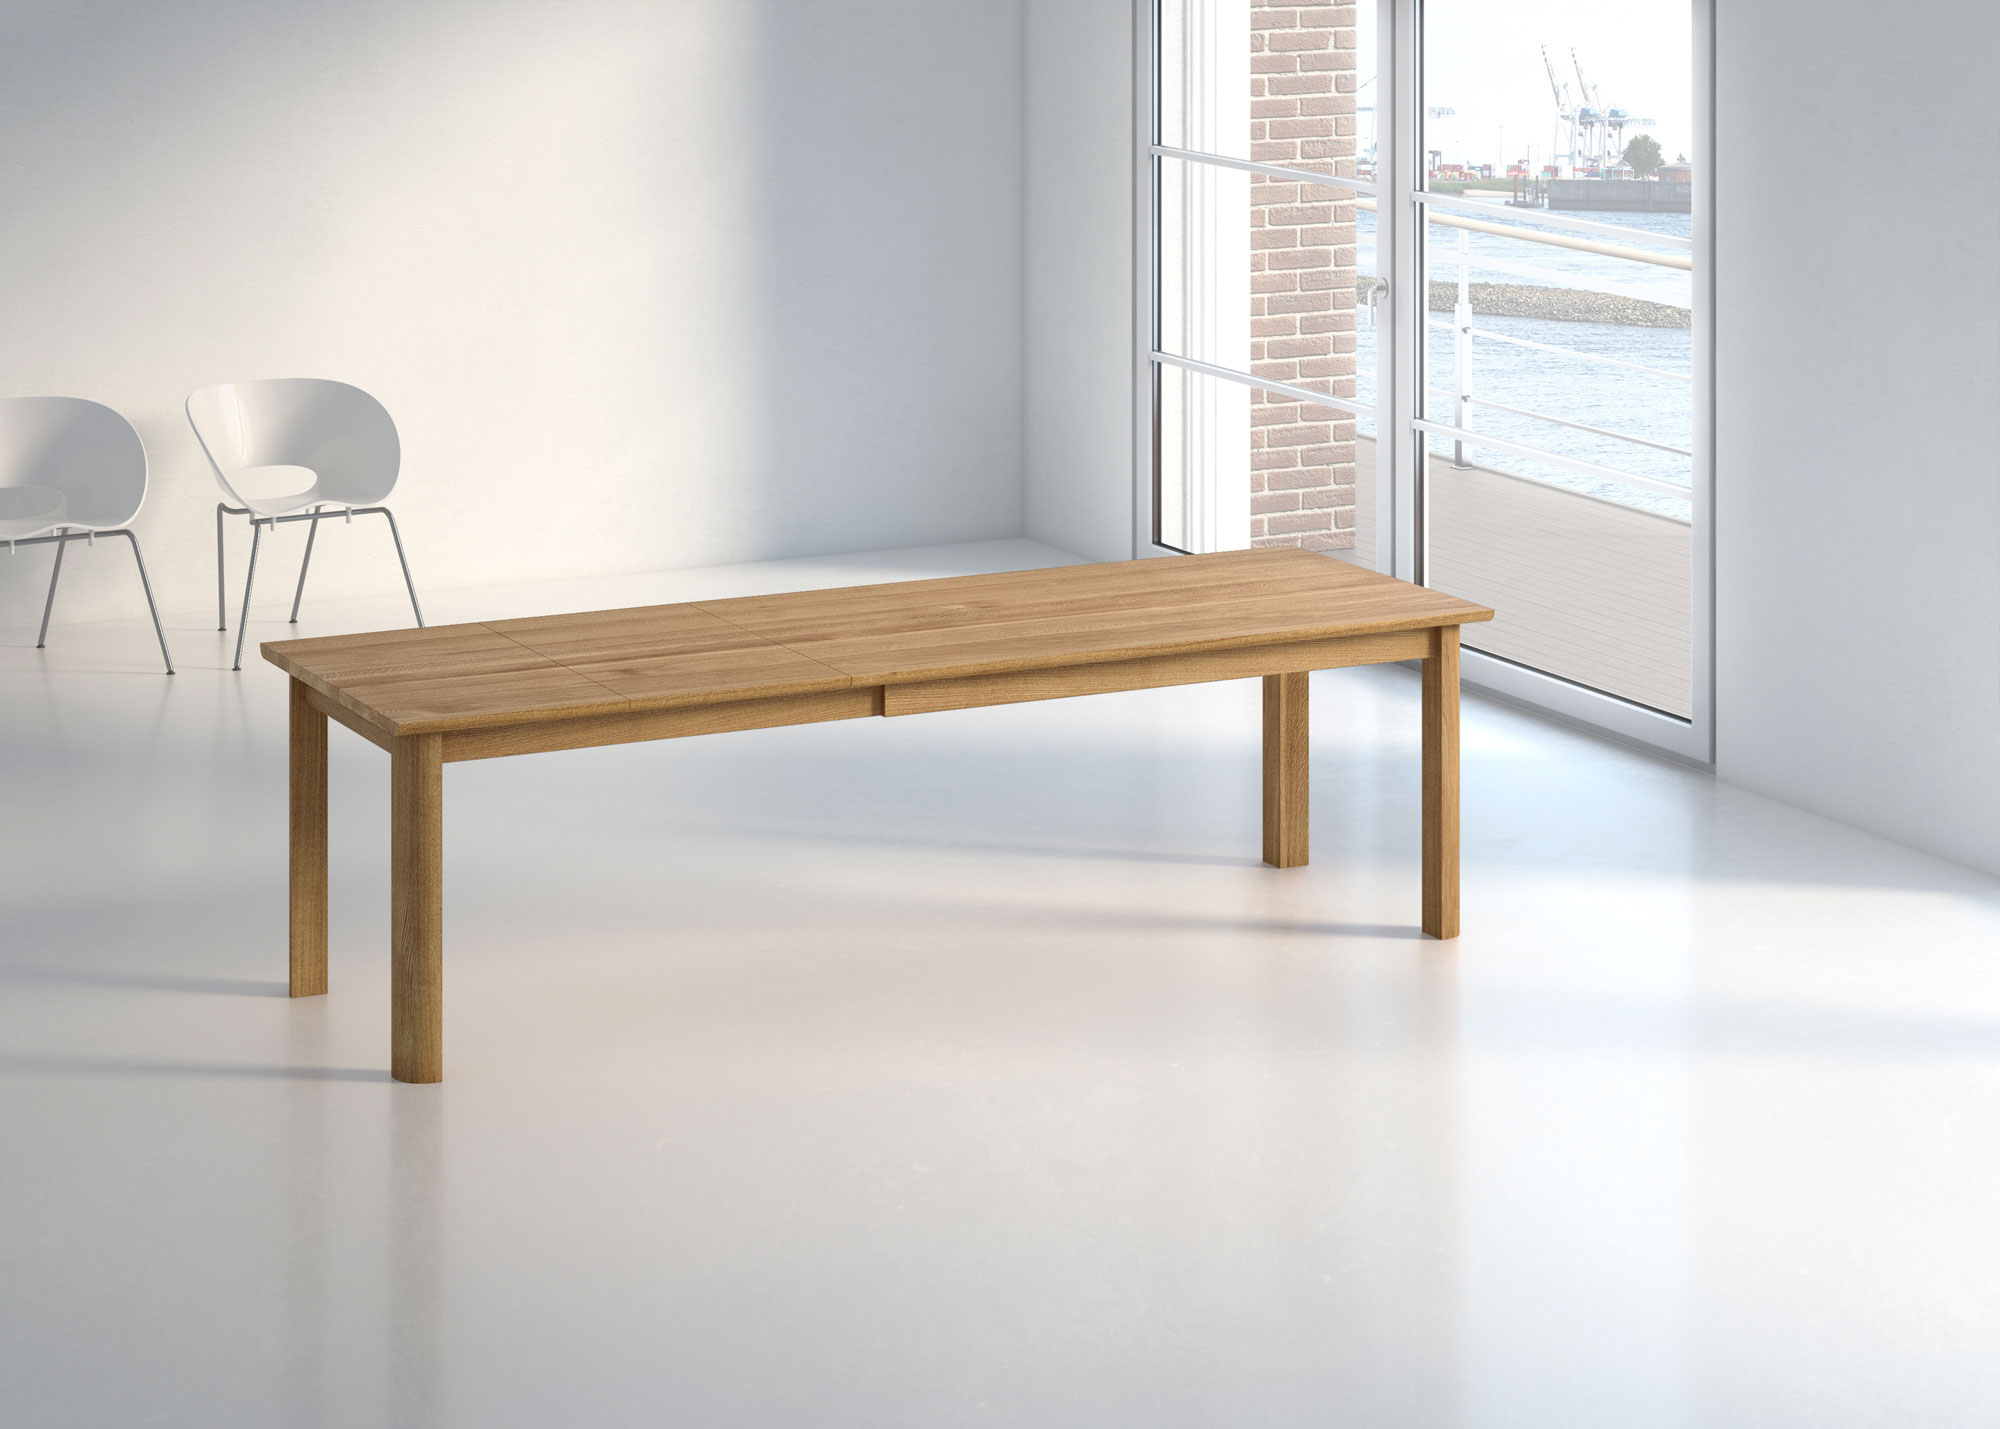 Extendable Dining Table VIVUS BUTTERFLY int-pk custom made in solid wood by vitamin design